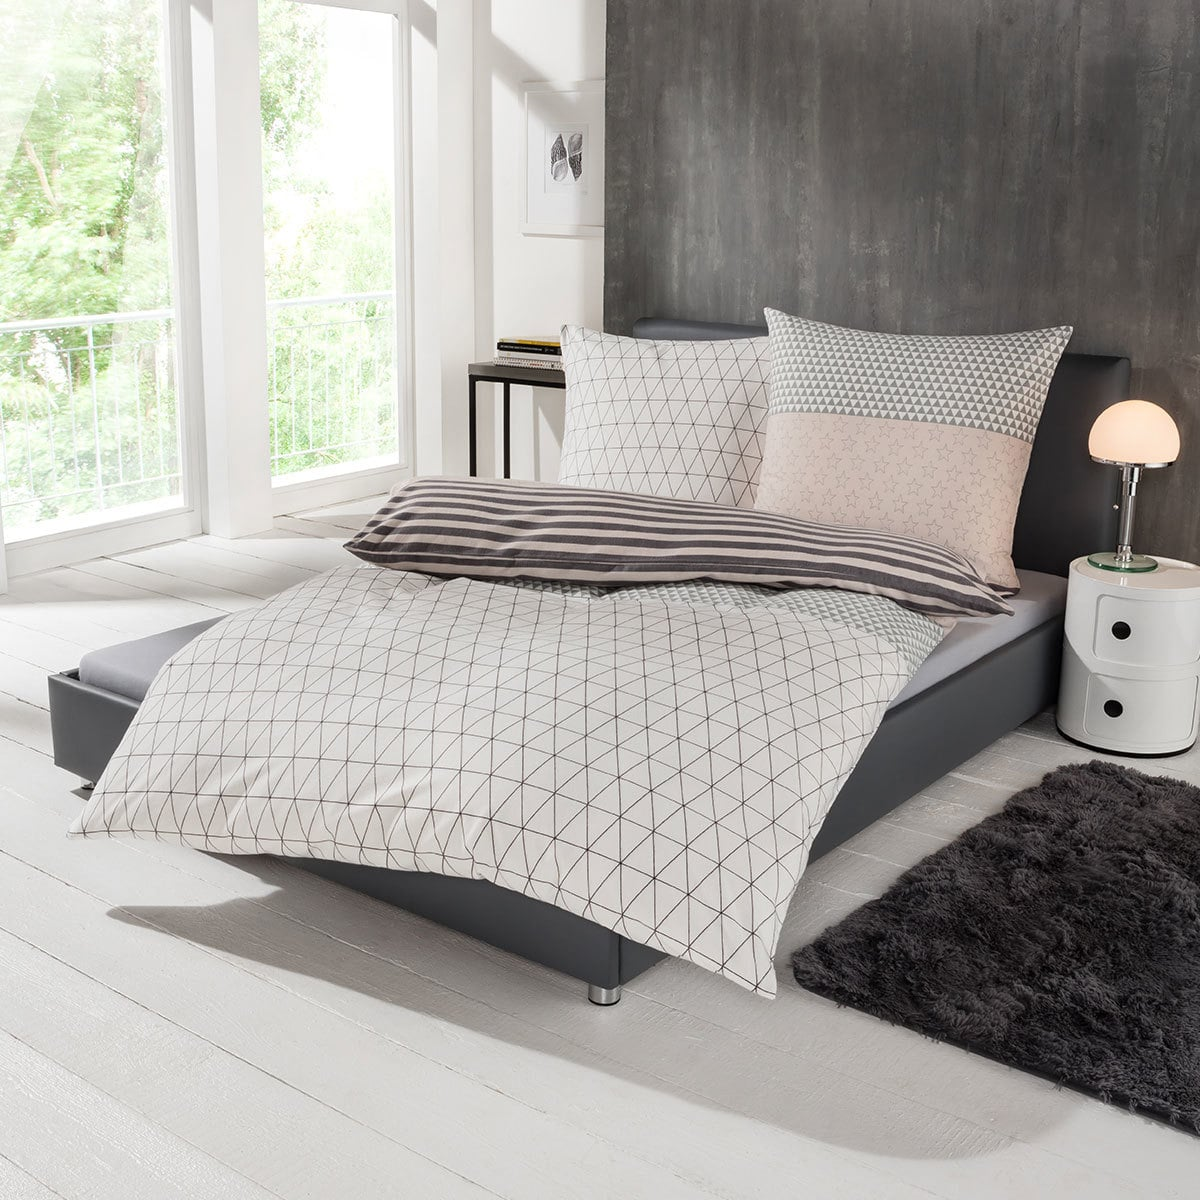 s oliver flanell bettw sche stars g nstig online kaufen bei bettwaren shop. Black Bedroom Furniture Sets. Home Design Ideas